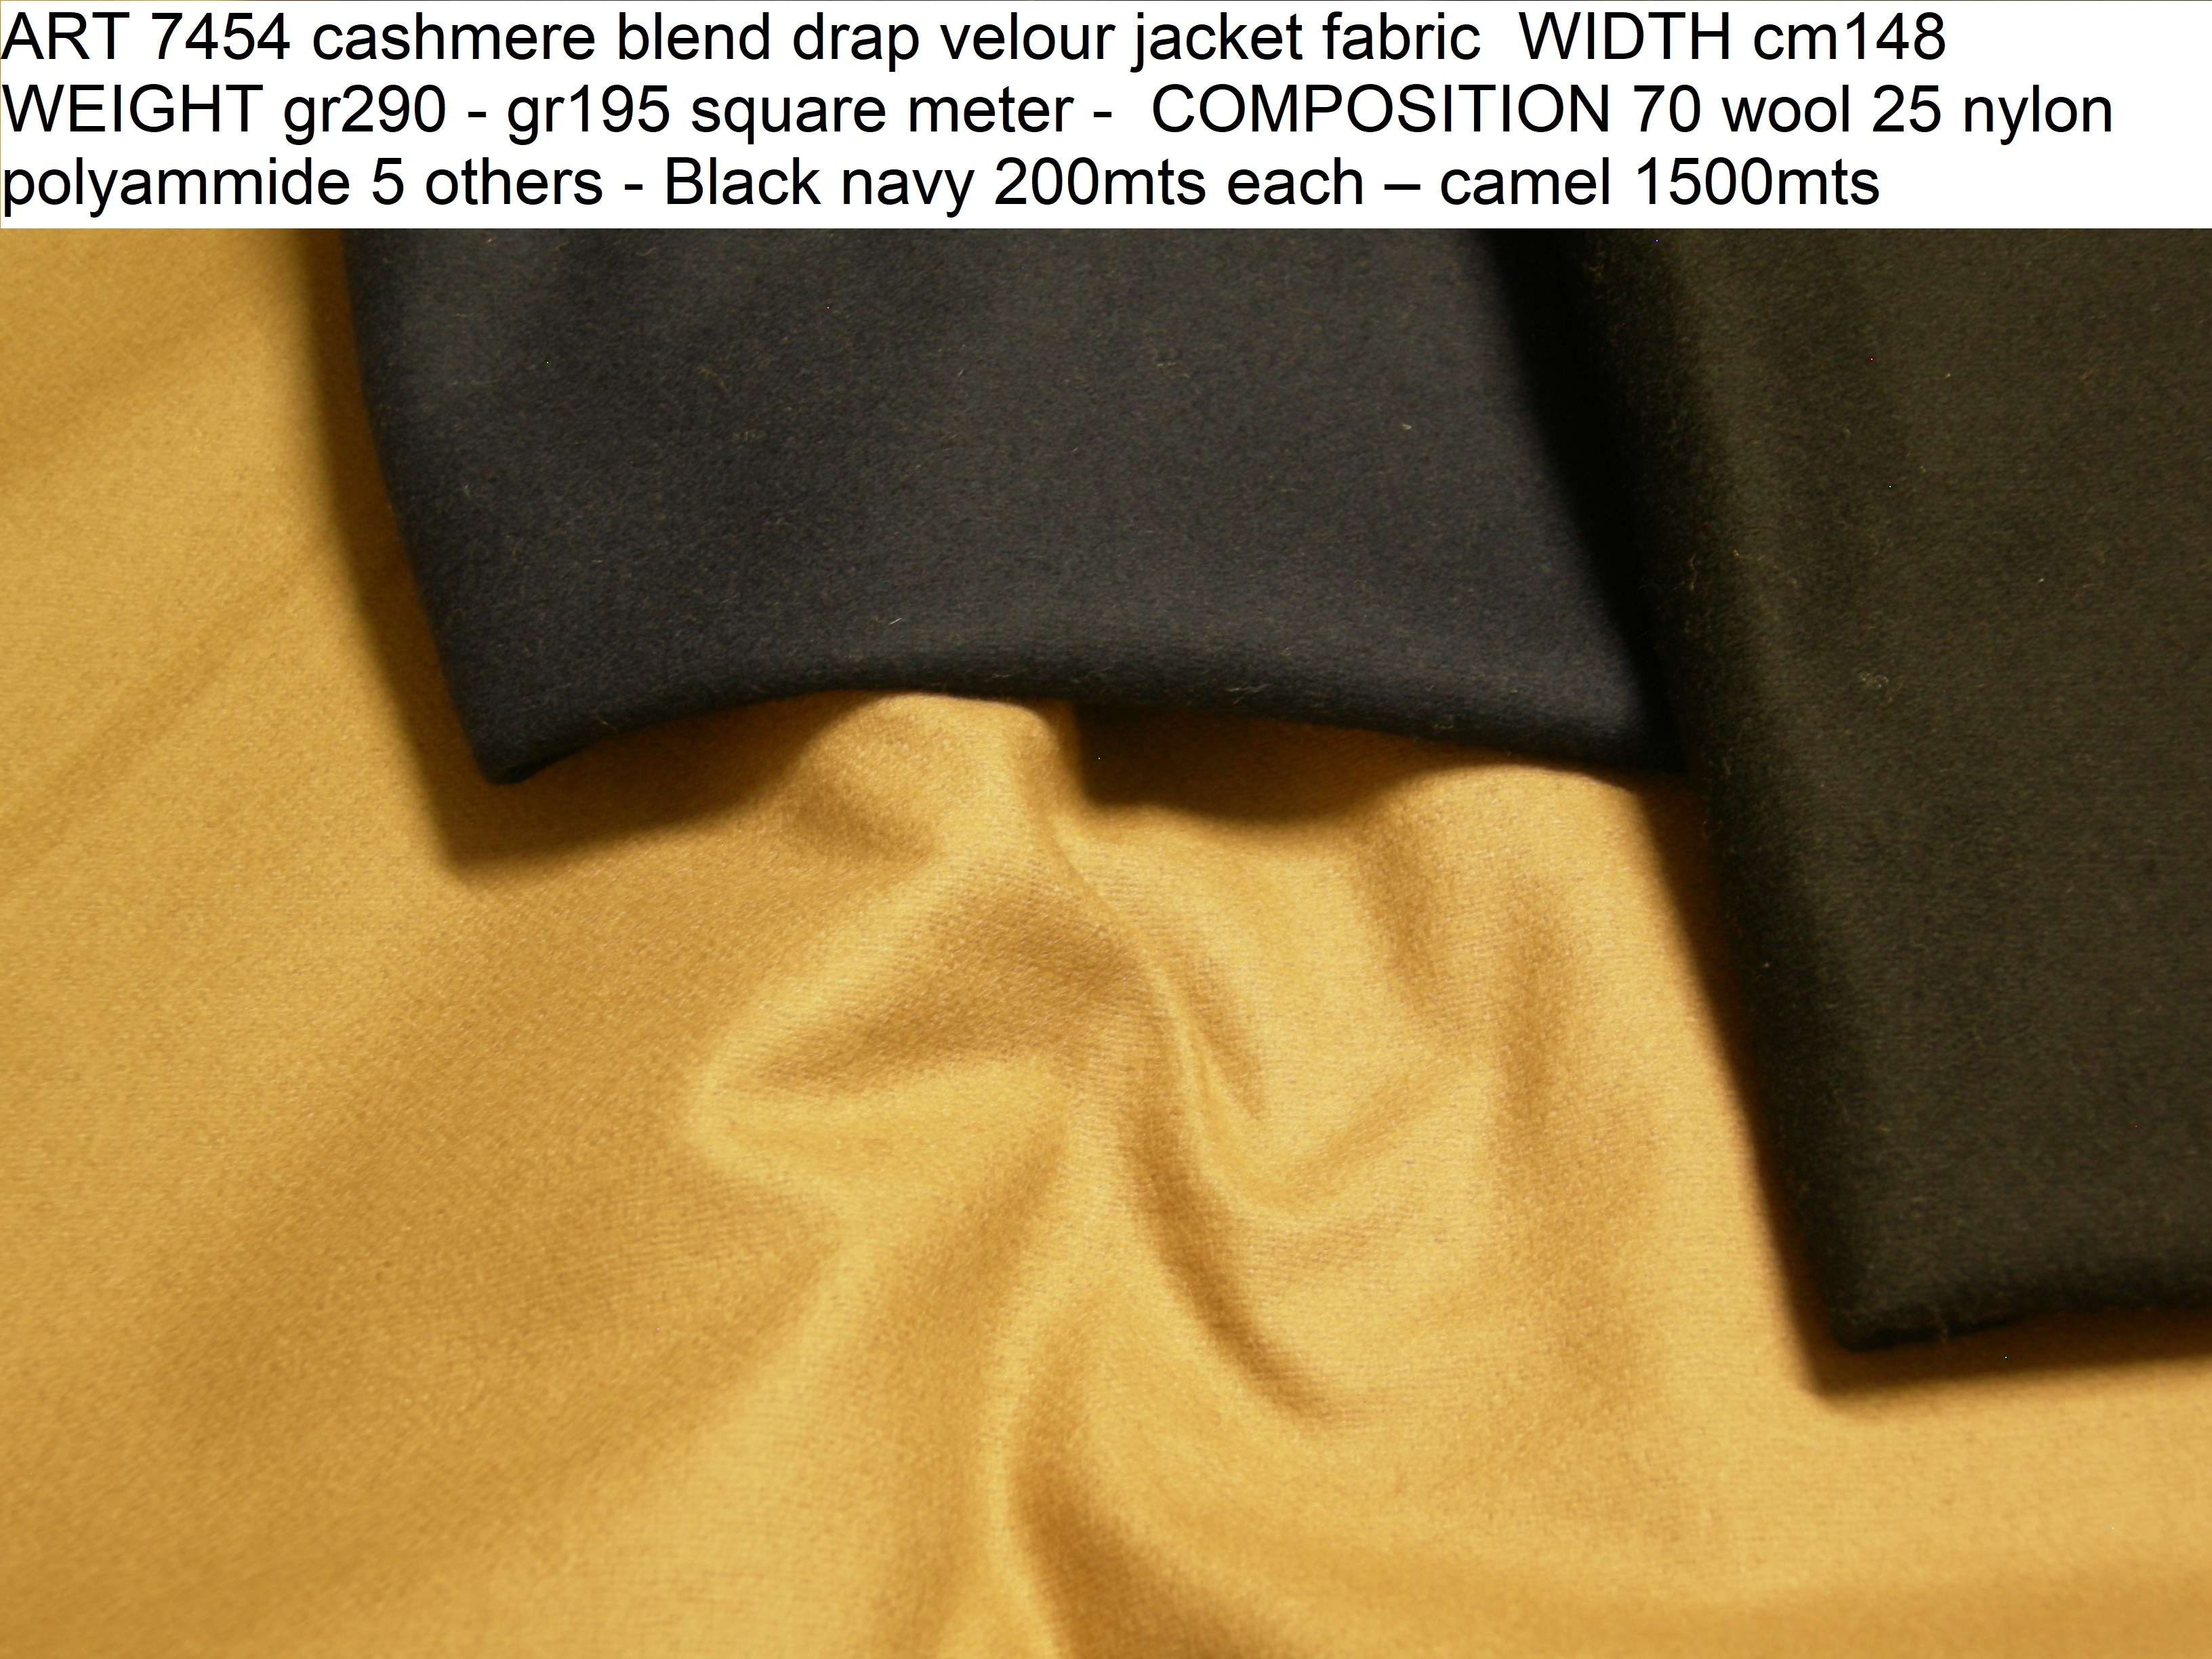 ART 7454 cashmere blend drap velour jacket fabric WIDTH cm148 WEIGHT gr290 - gr195 square meter - COMPOSITION 70 wool 25 nylon polyammide 5 others - Black navy 200mts each – camel 1500mts